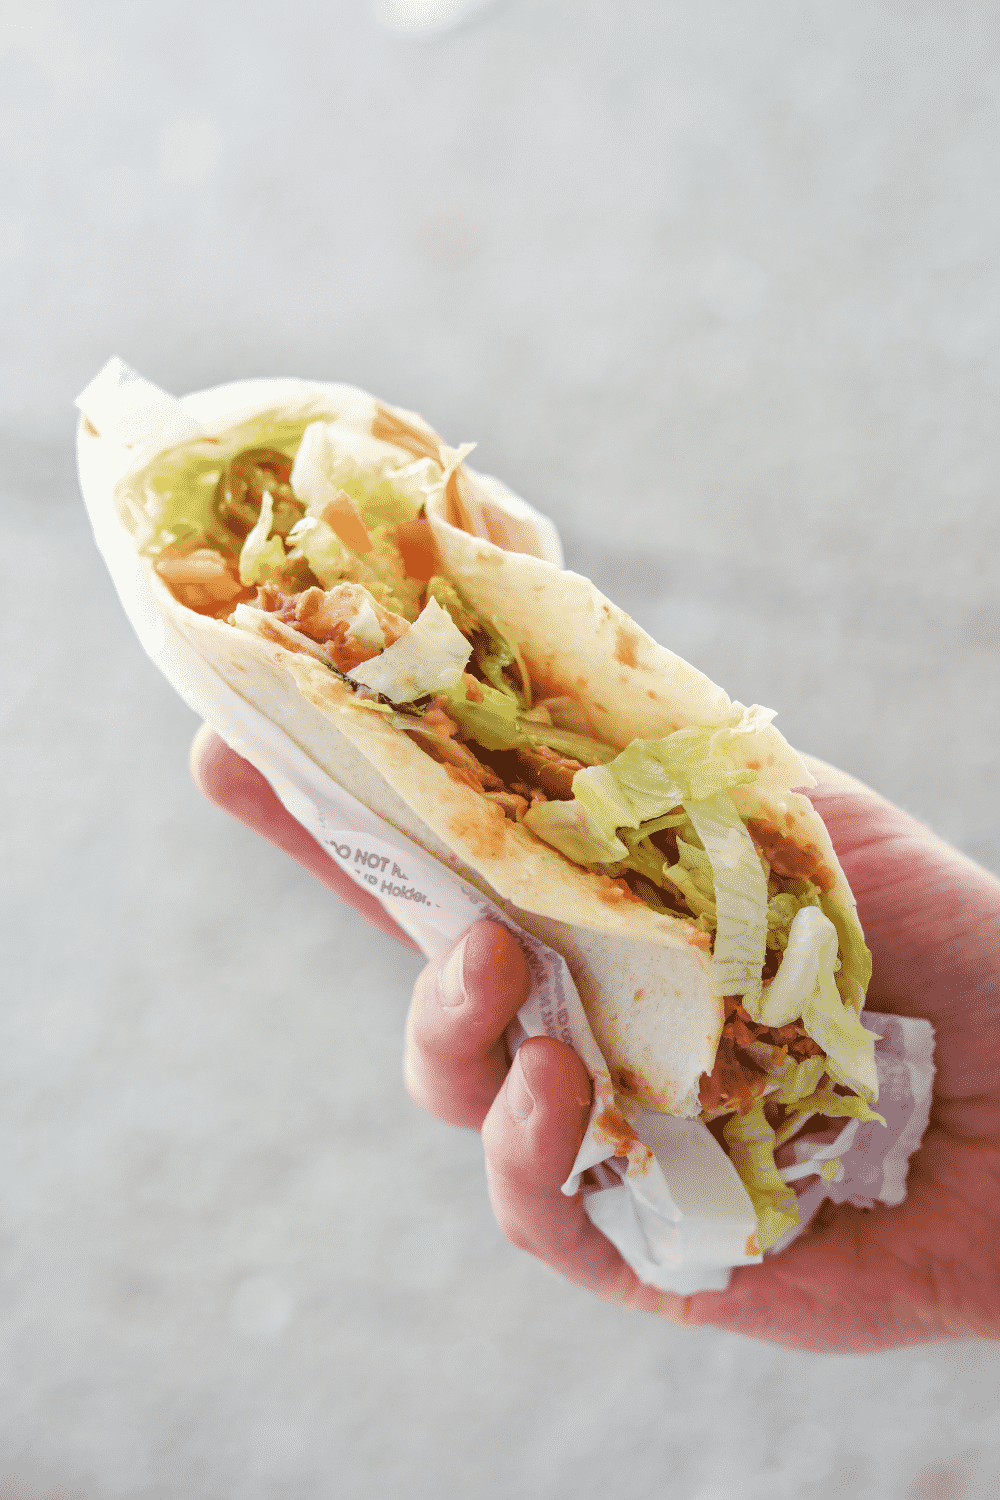 Hand holding a vegan soft taco from Taco Bell